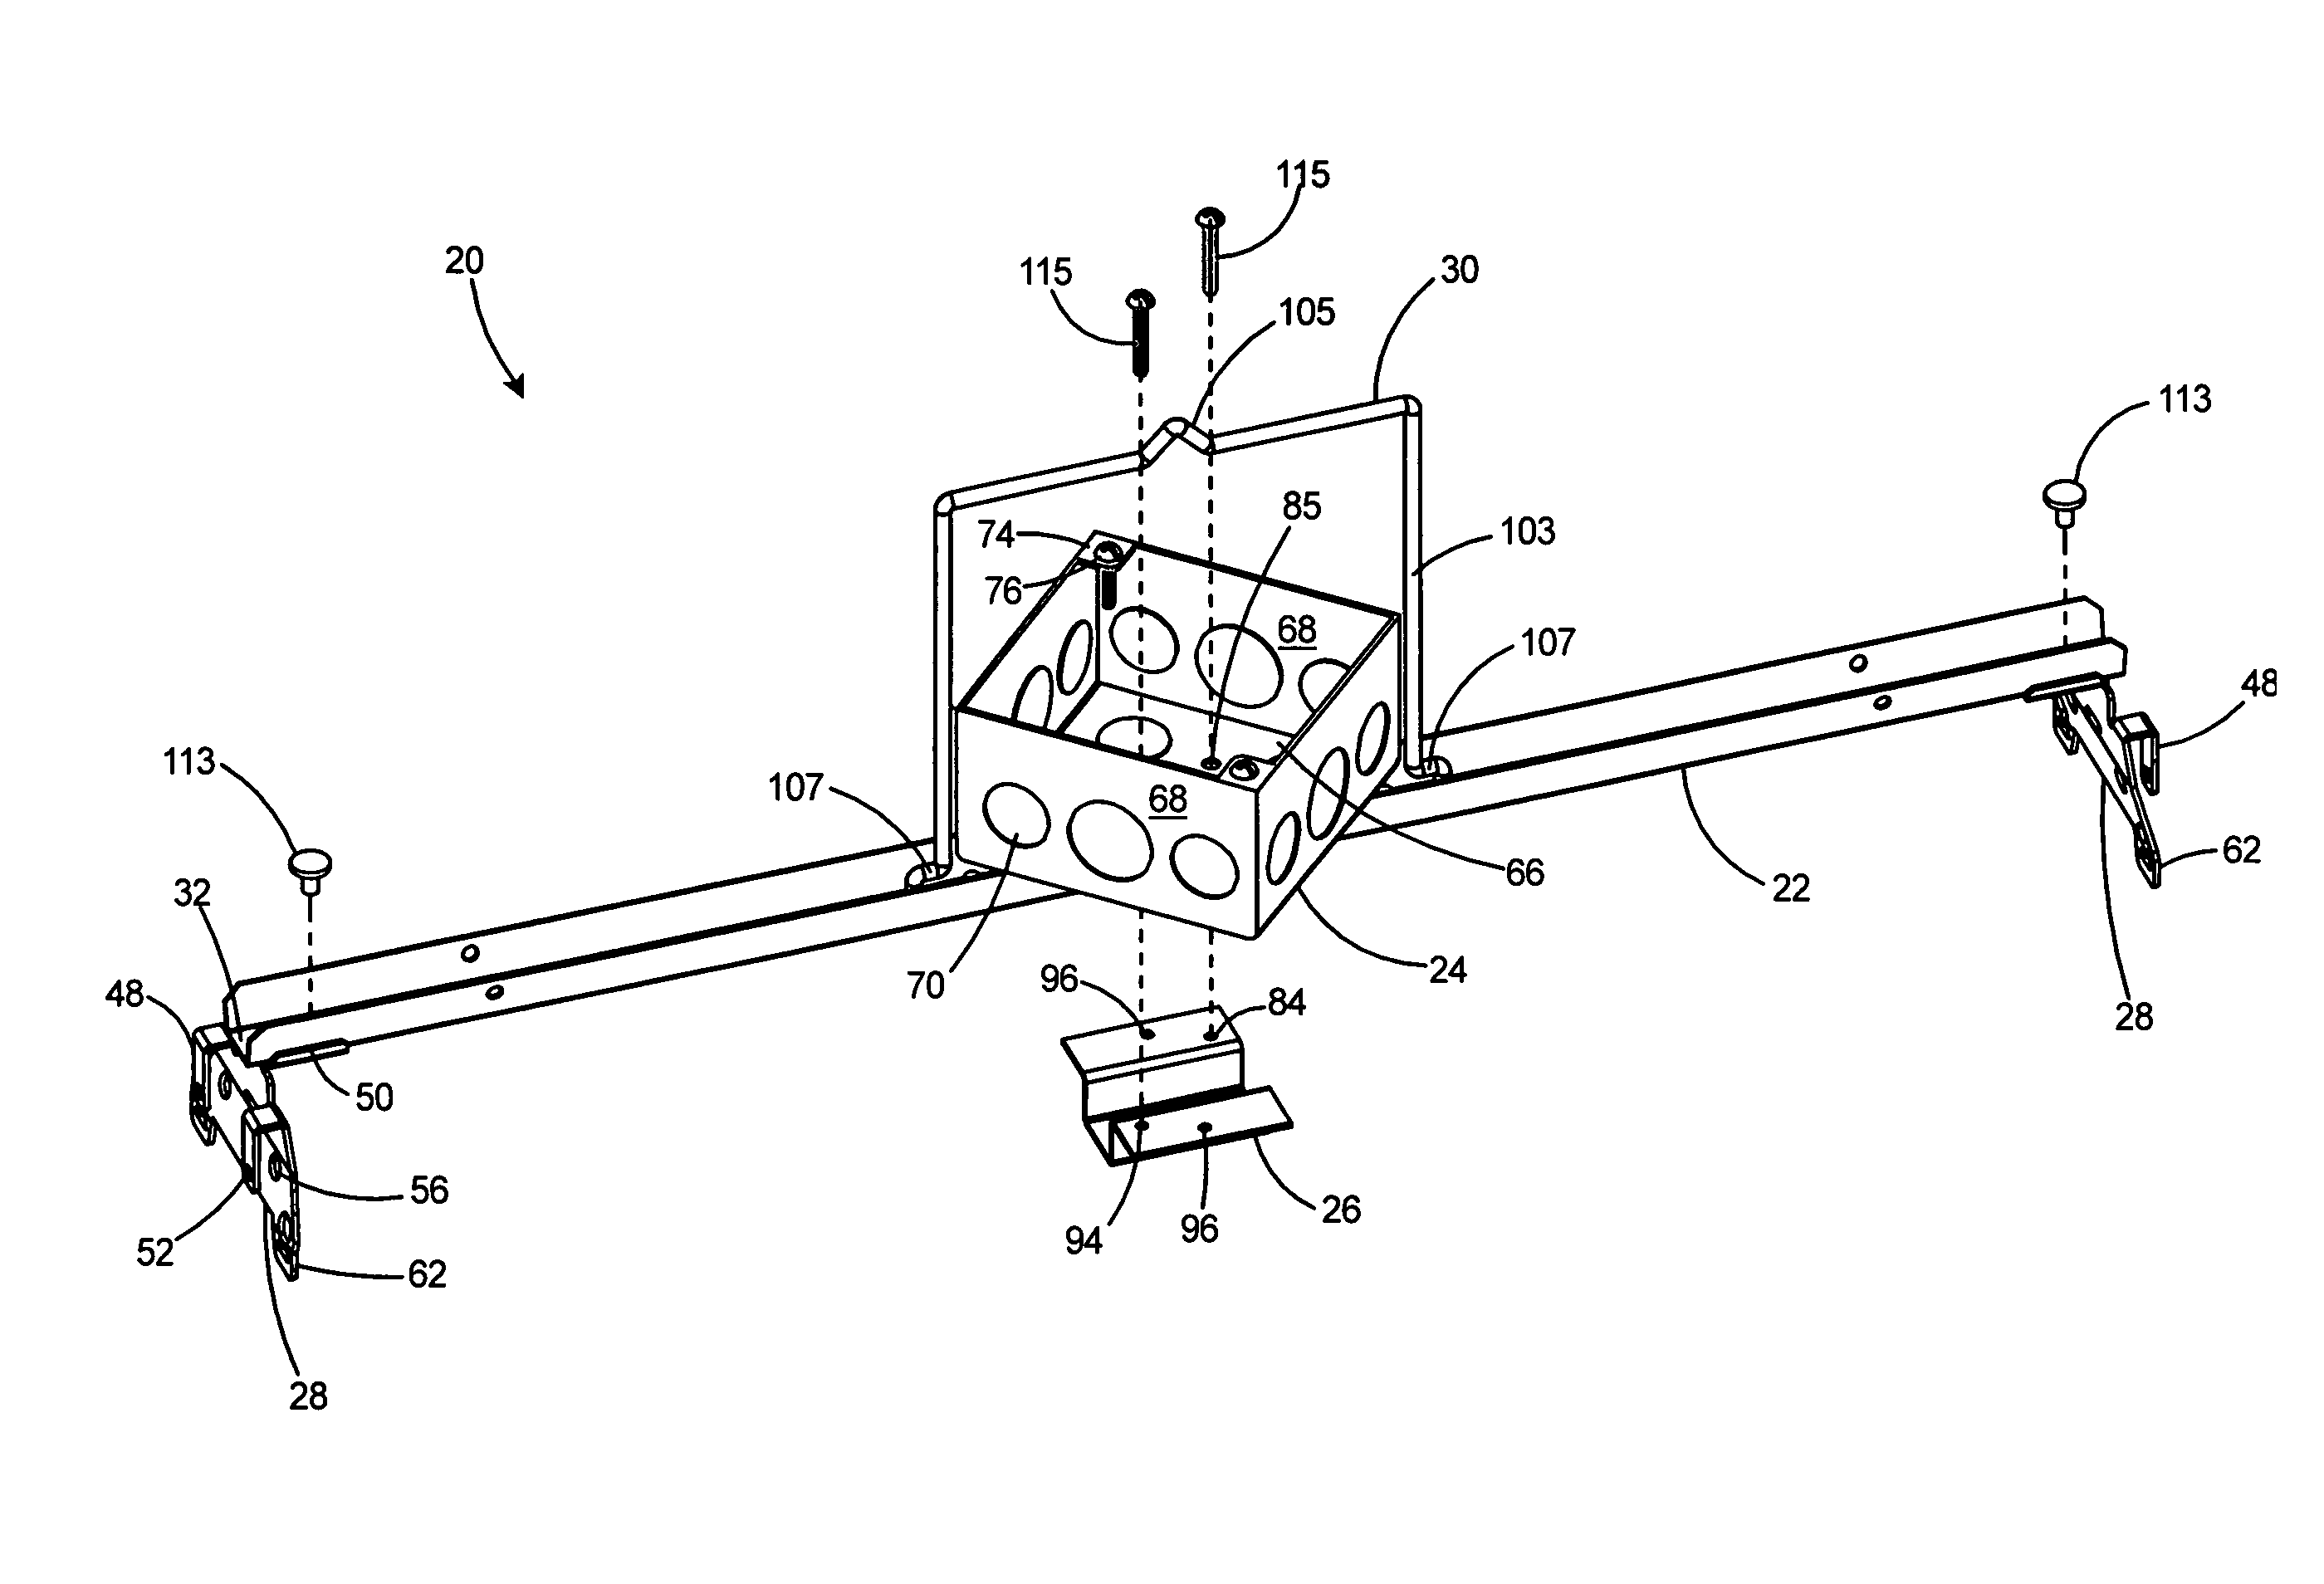 ... box hanger assembly for a suspended ceiling - Google Patents